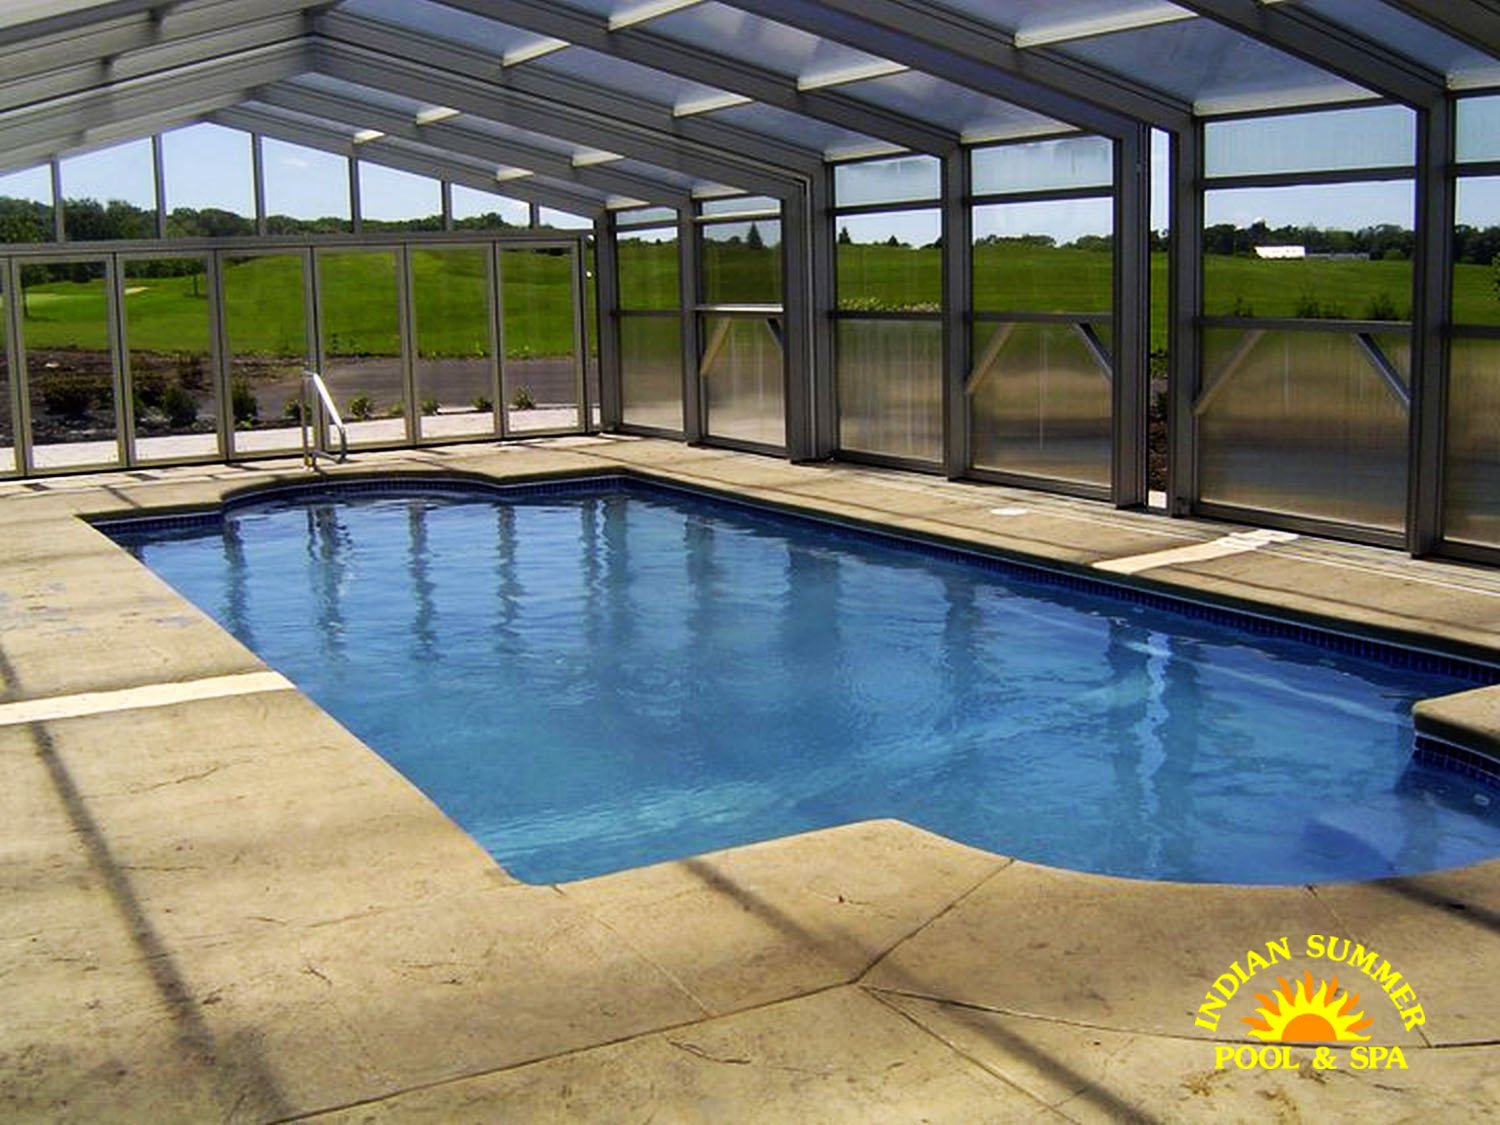 Fiberglass pools springfield mo indian summer pool and spa for Fiberglass inground swimming pools